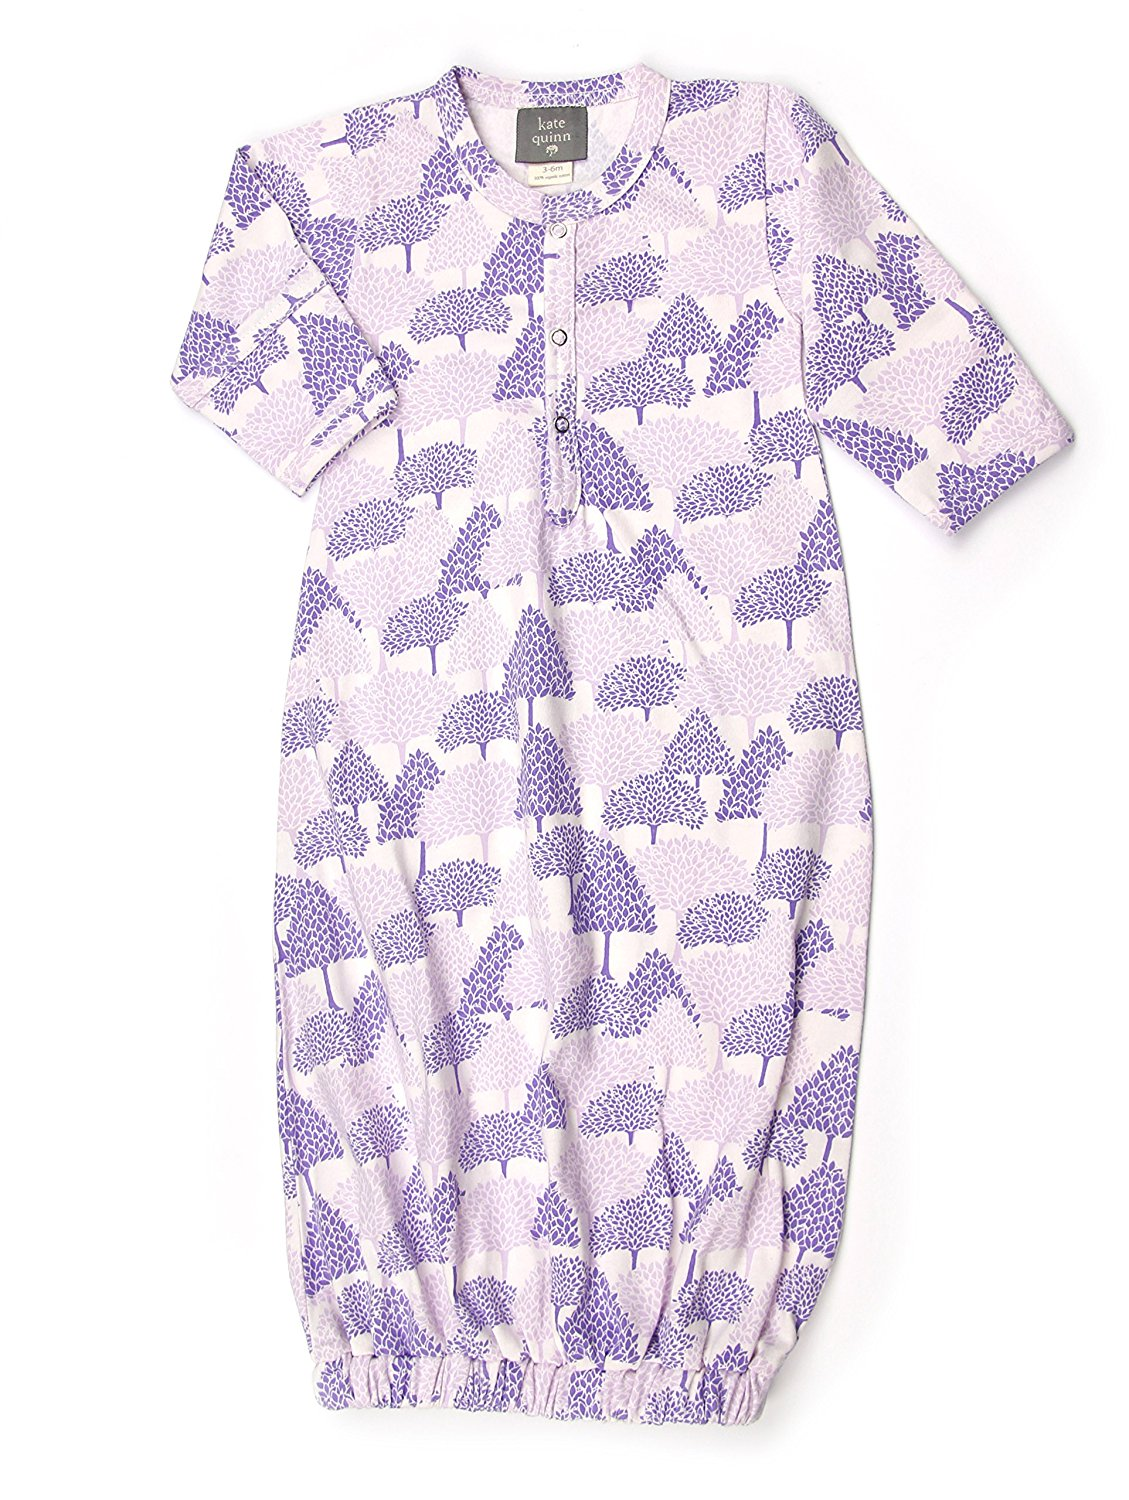 Kate Quinn Organics Unisex-baby Classic Sacque, 0-3M (Forest)